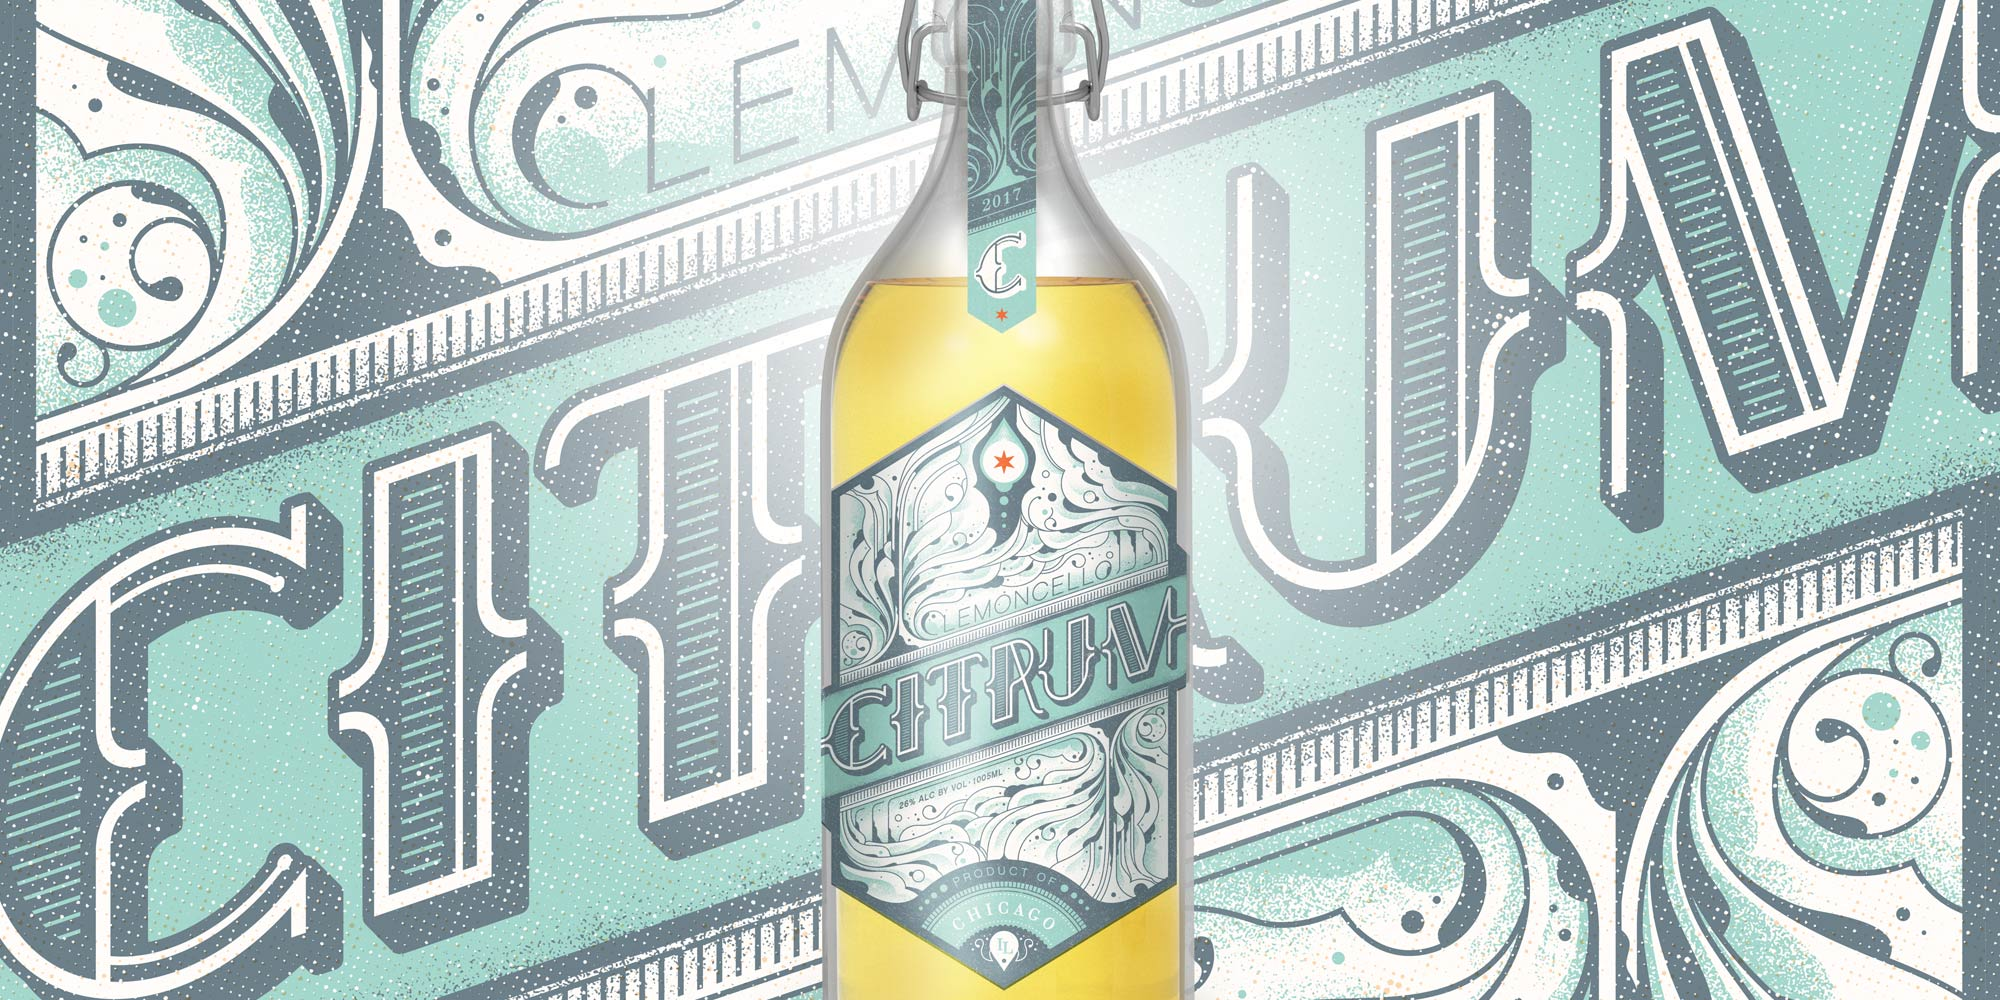 Citrum Label Design